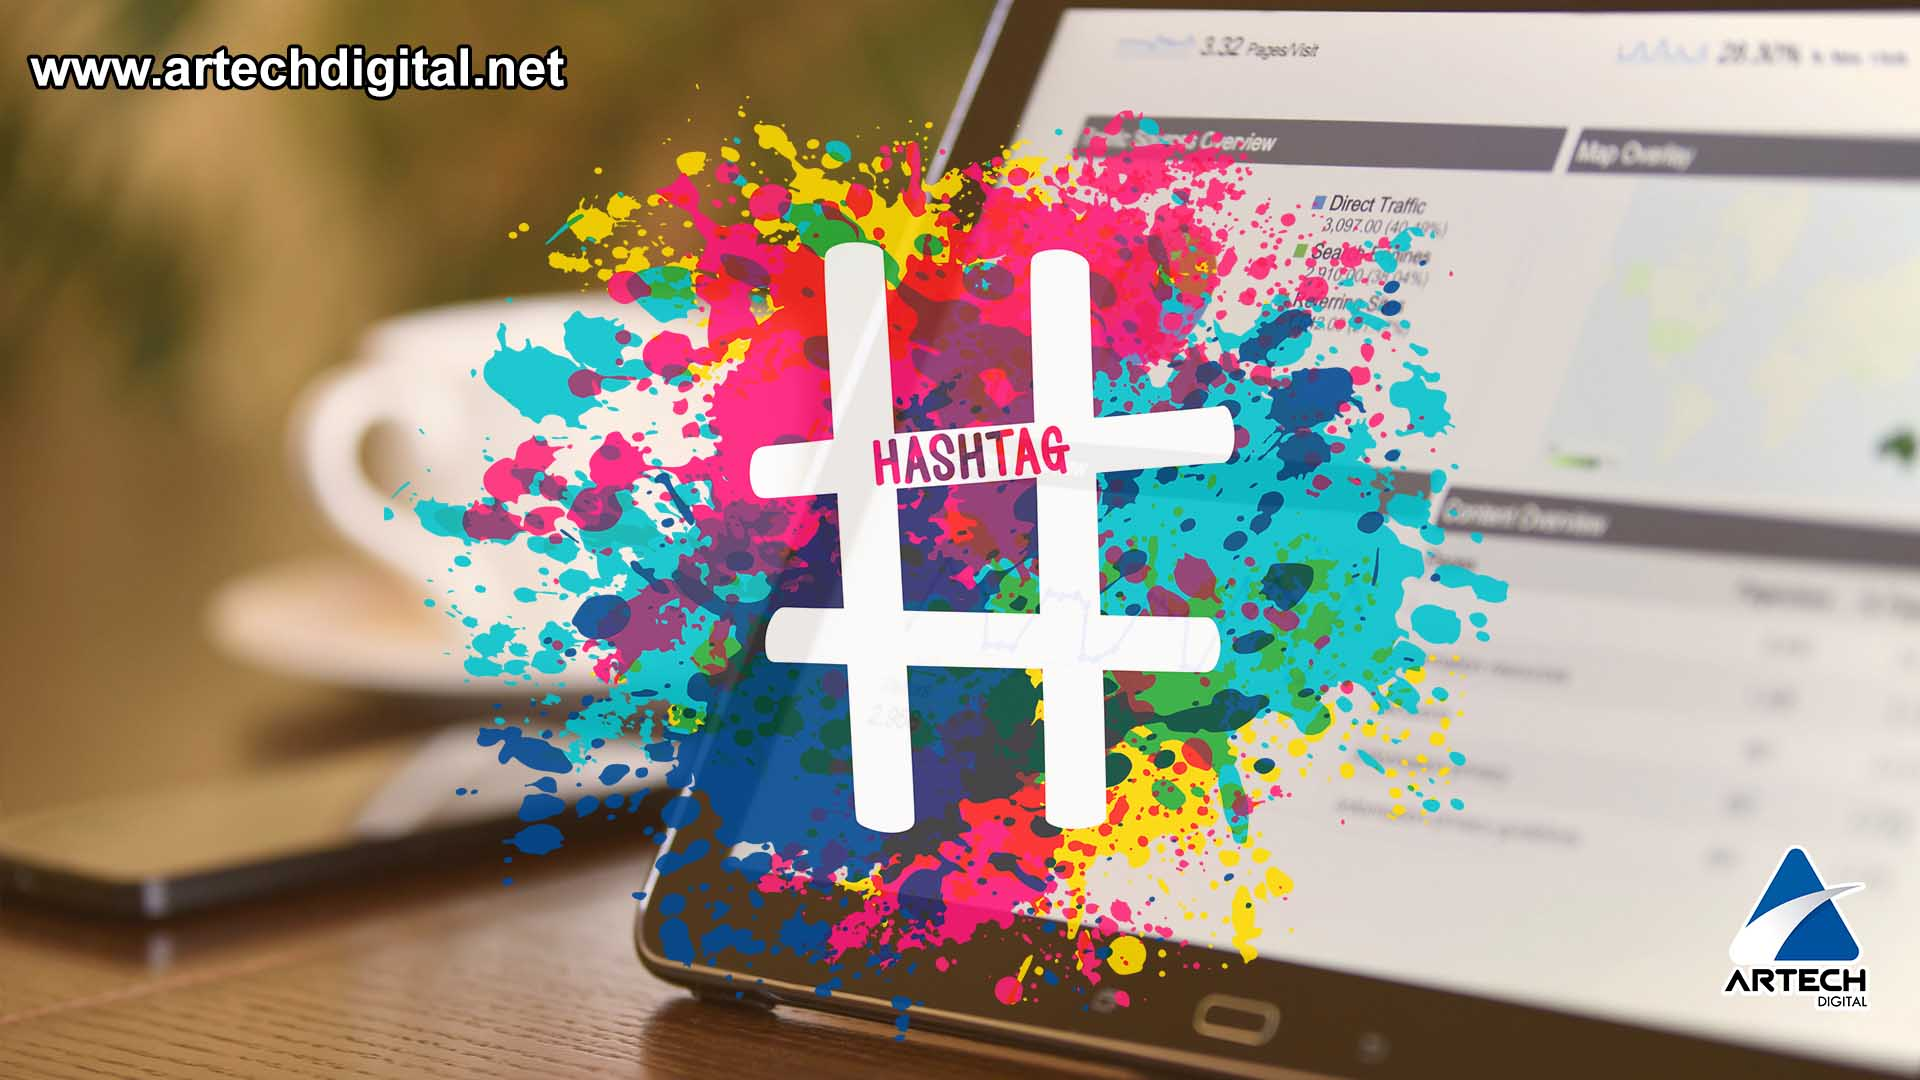 Artech Digital - hashtag on social networks